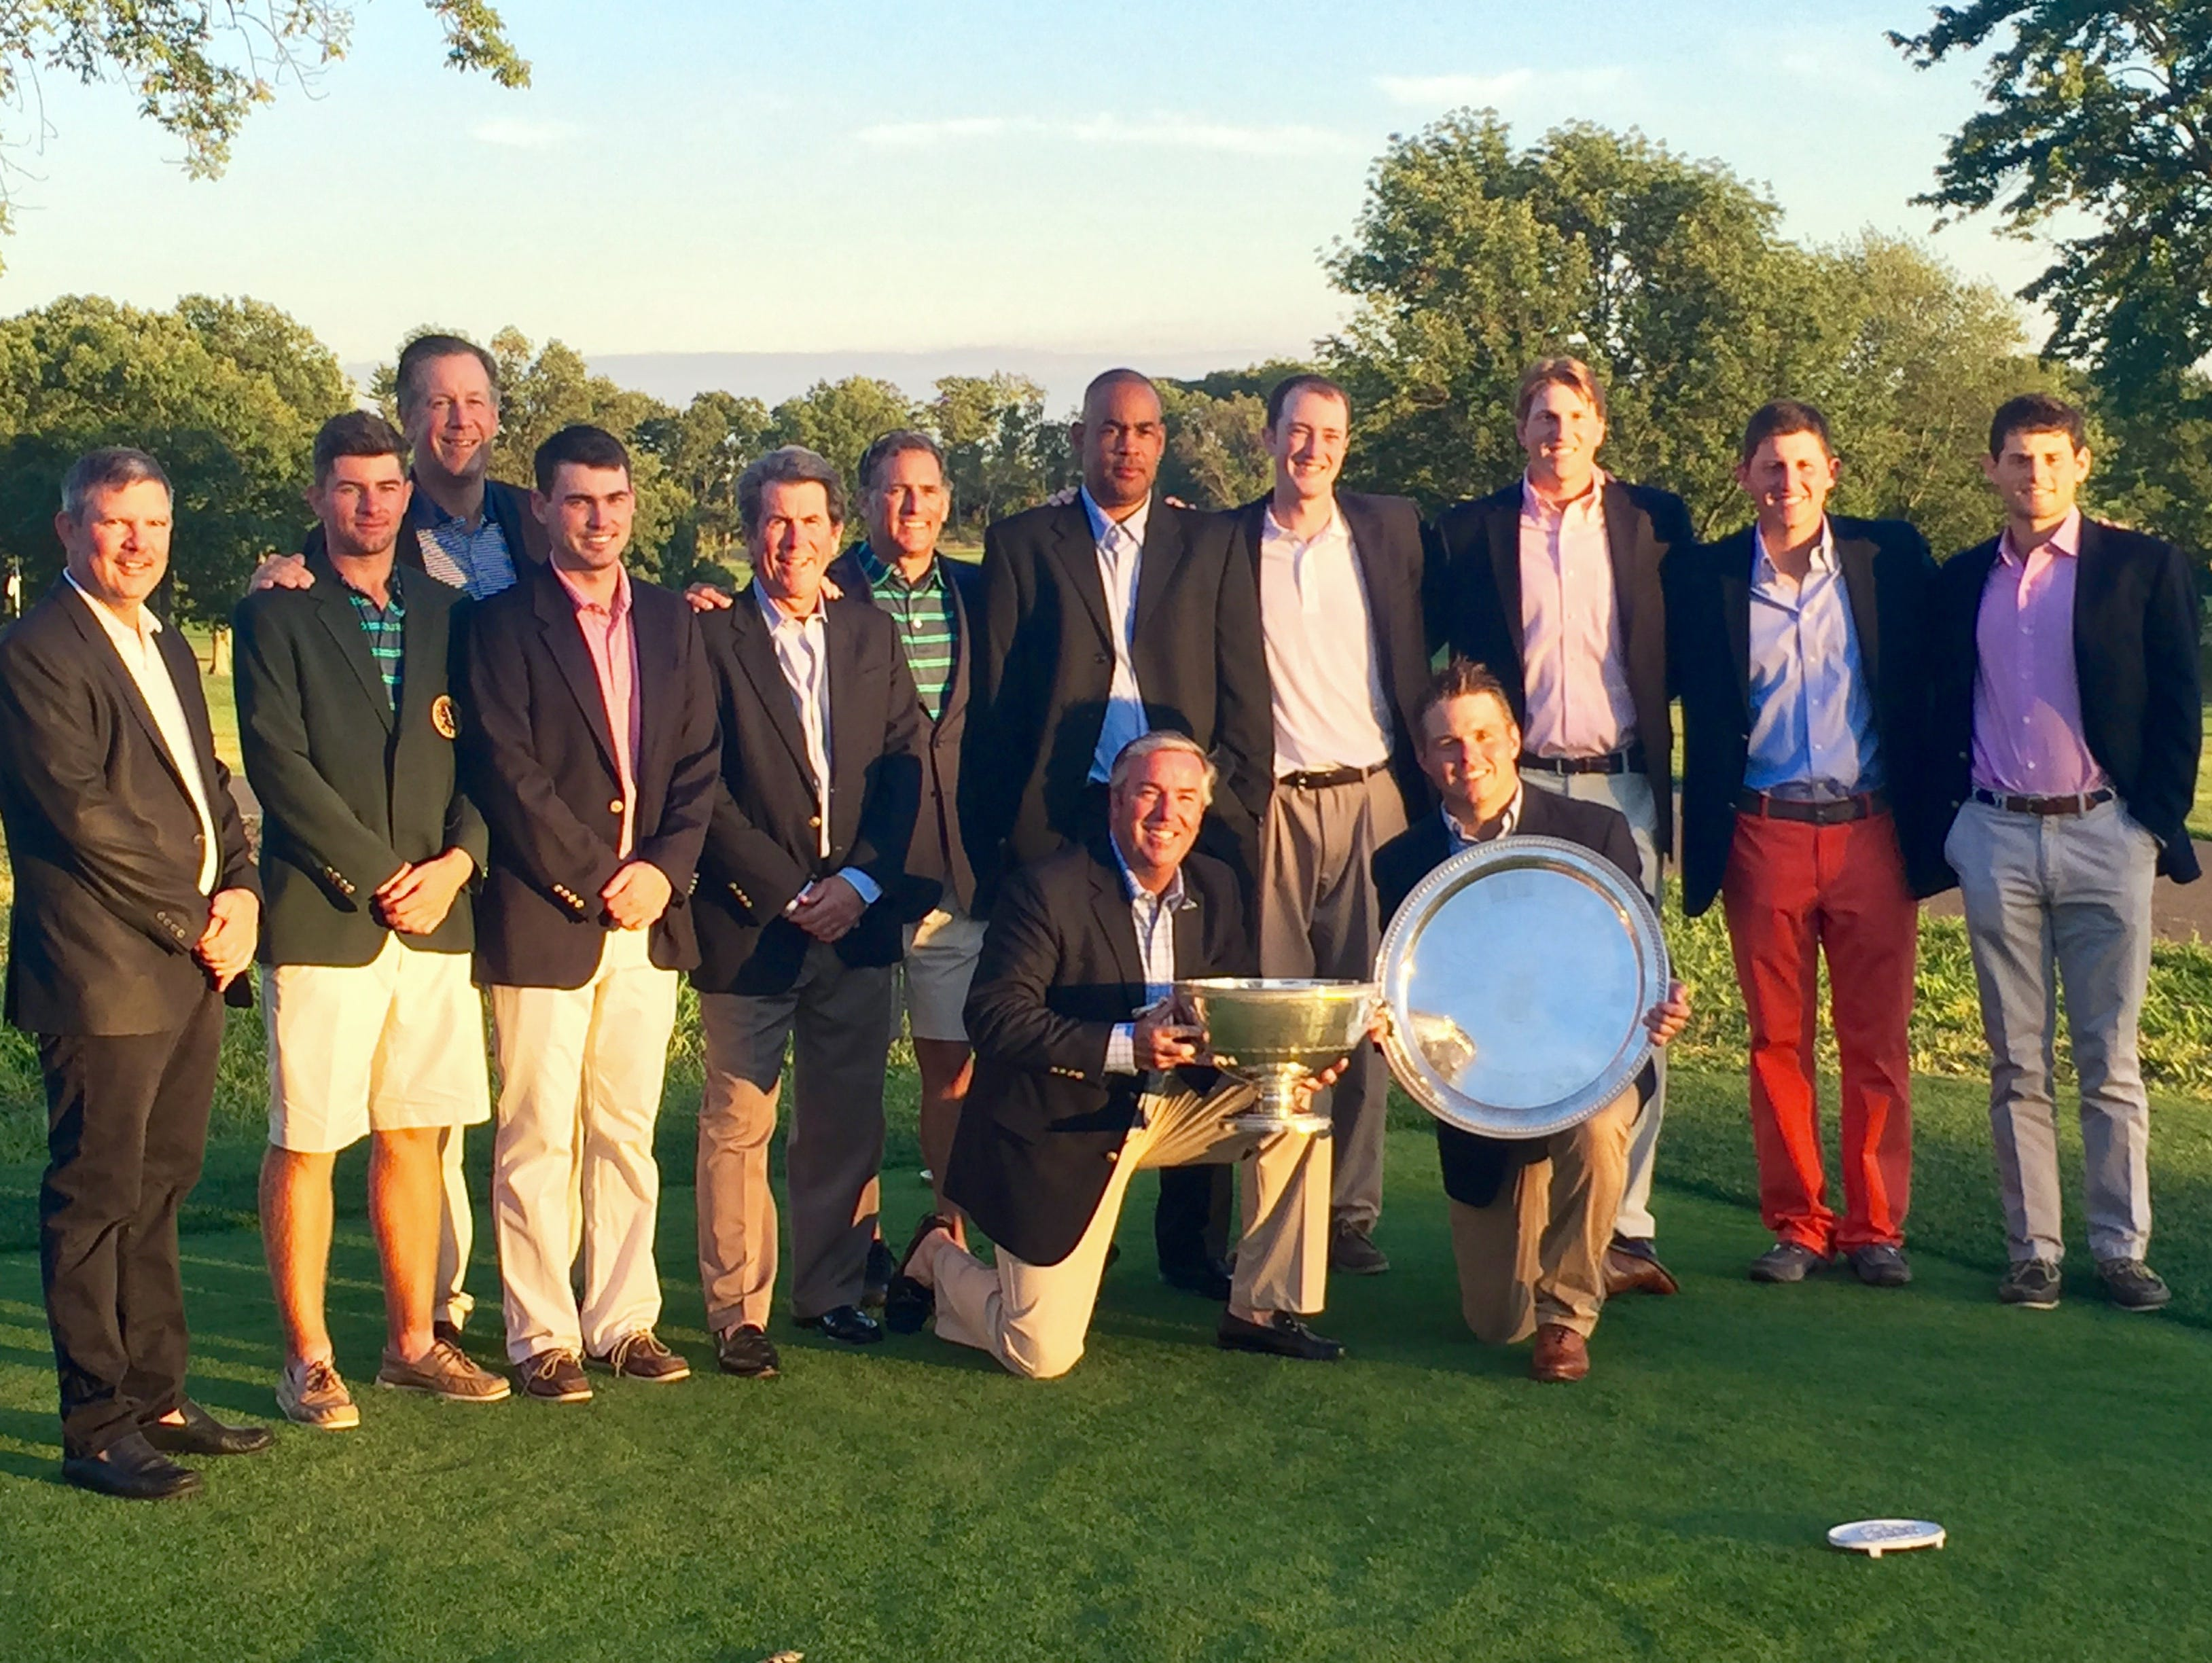 The Westchester Golf Association team came back to win the Stoddard Trophy Matches at Essex County Country Club.